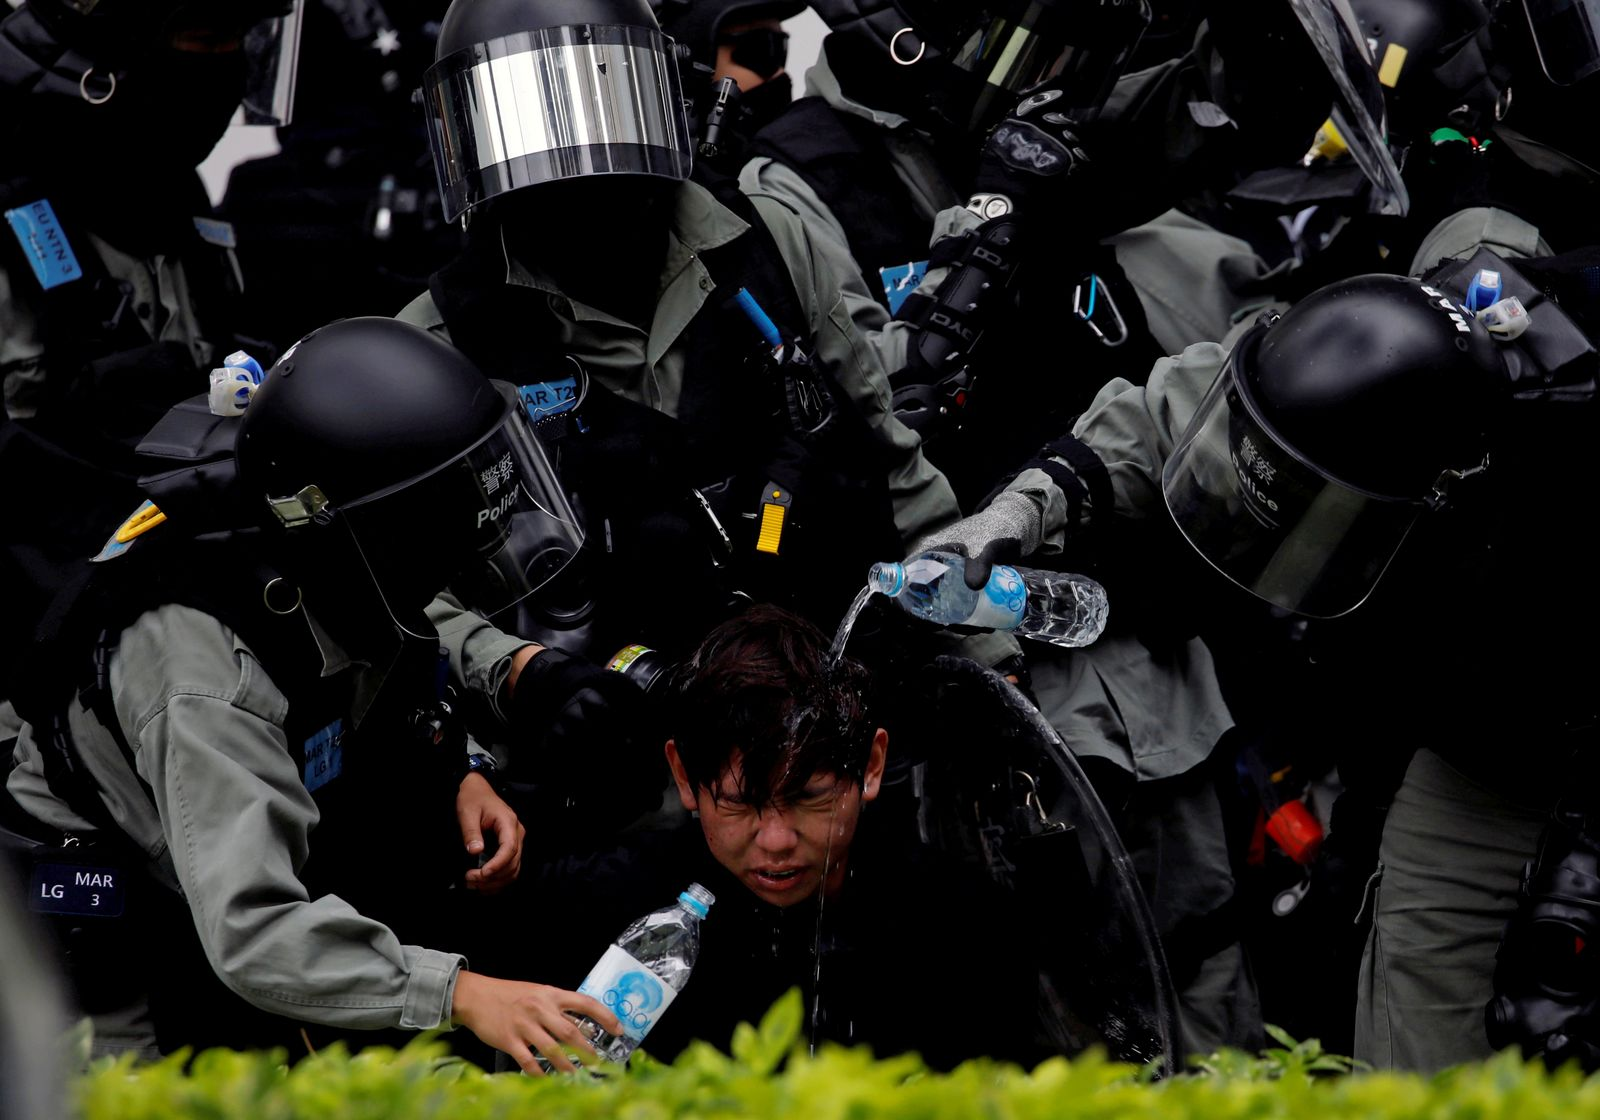 Riot police pour water on the face of anti-government protester who was pepper sprayed while getting detained after an anti-parallel trading protest at Sheung Shui, a border town in Hong Kong